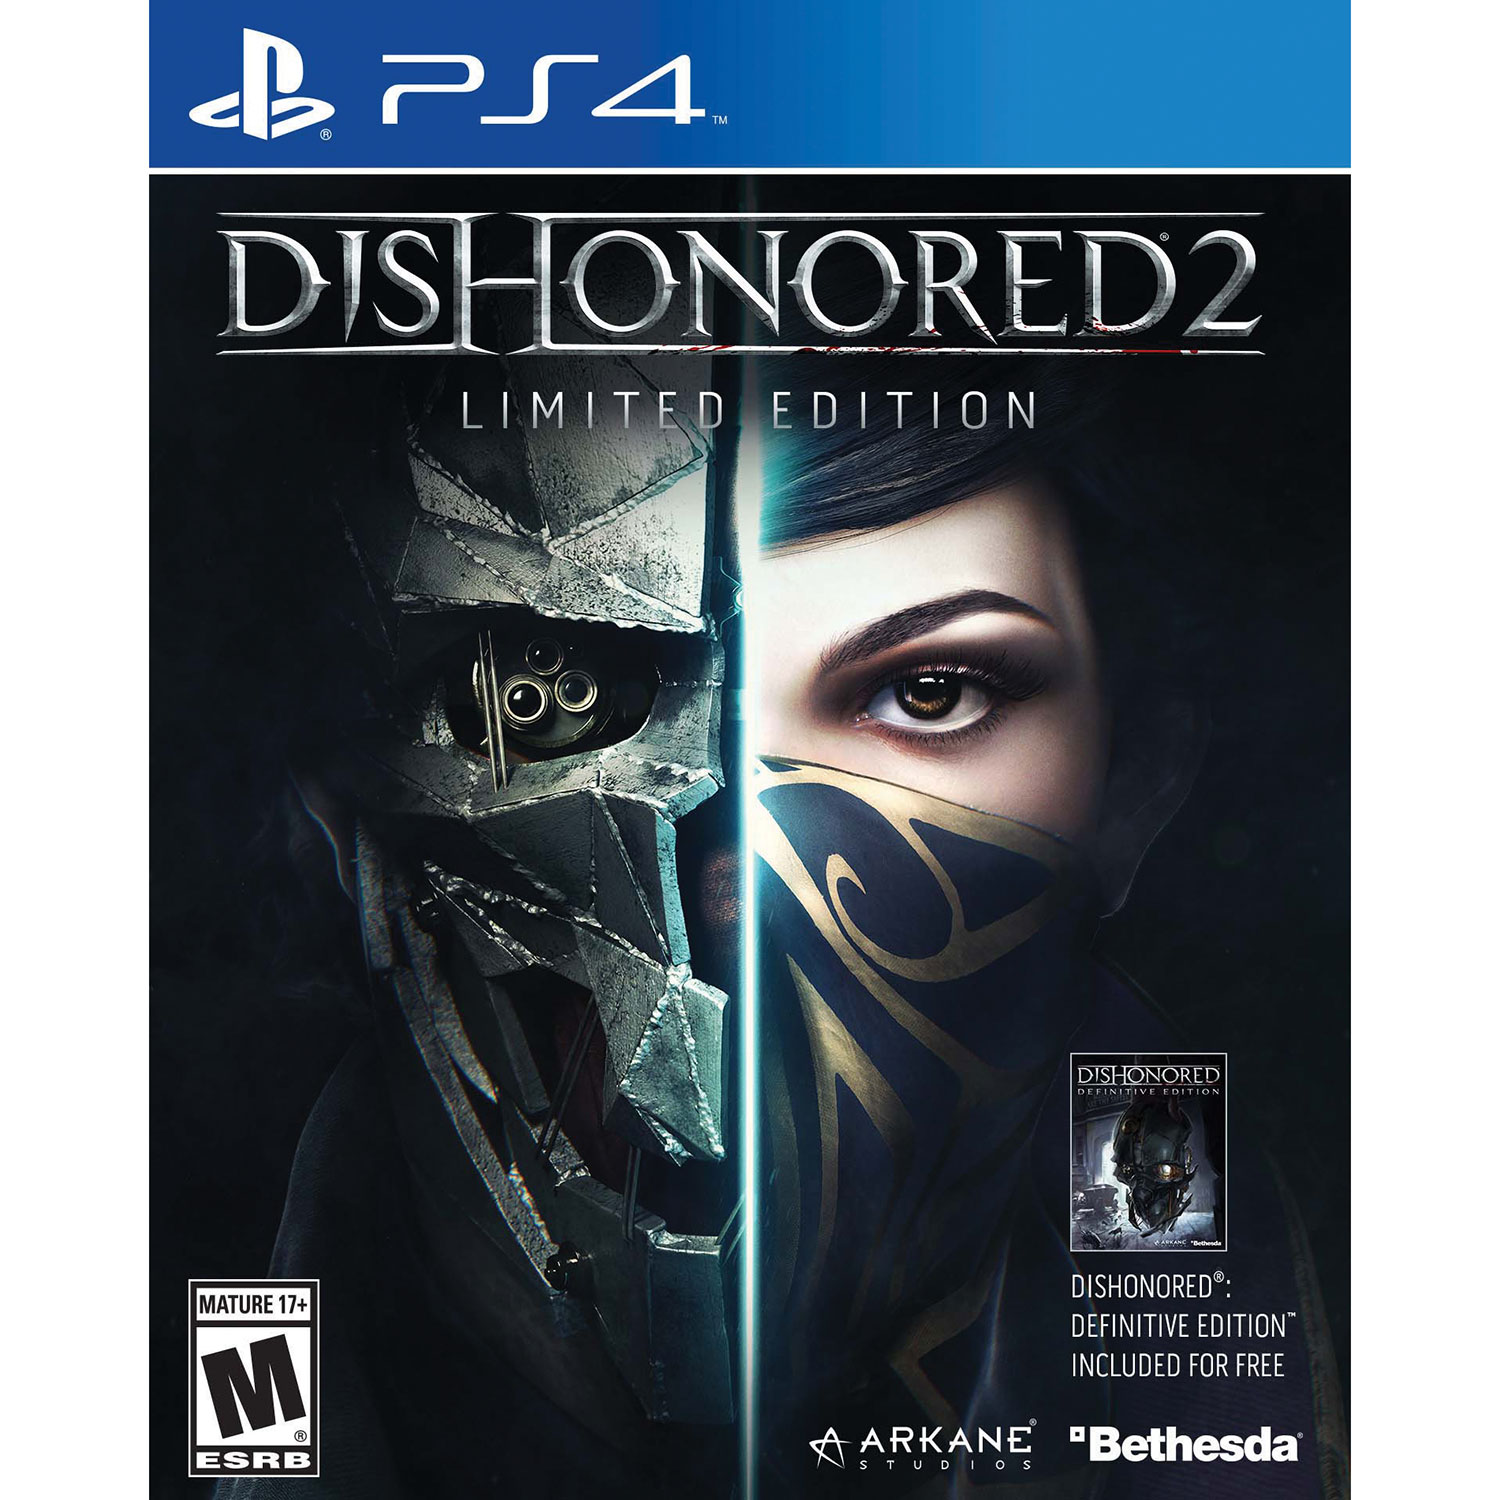 [Best Buy]Dishonored 2 + Dishonored Definitive $49.99 Save $30